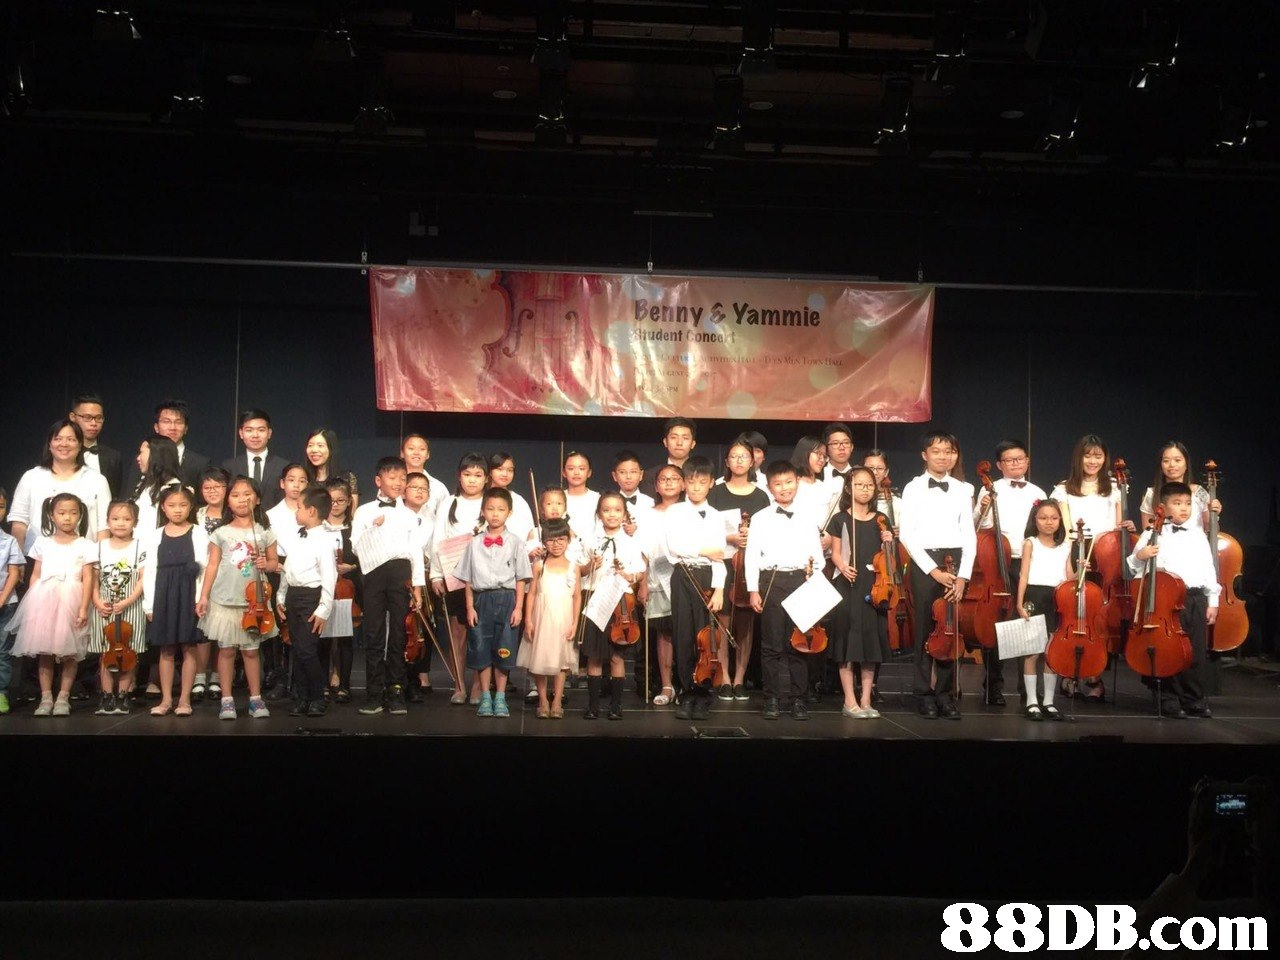 Behny Yammie udent Conco   stage,performance,concert,musical ensemble,orchestra